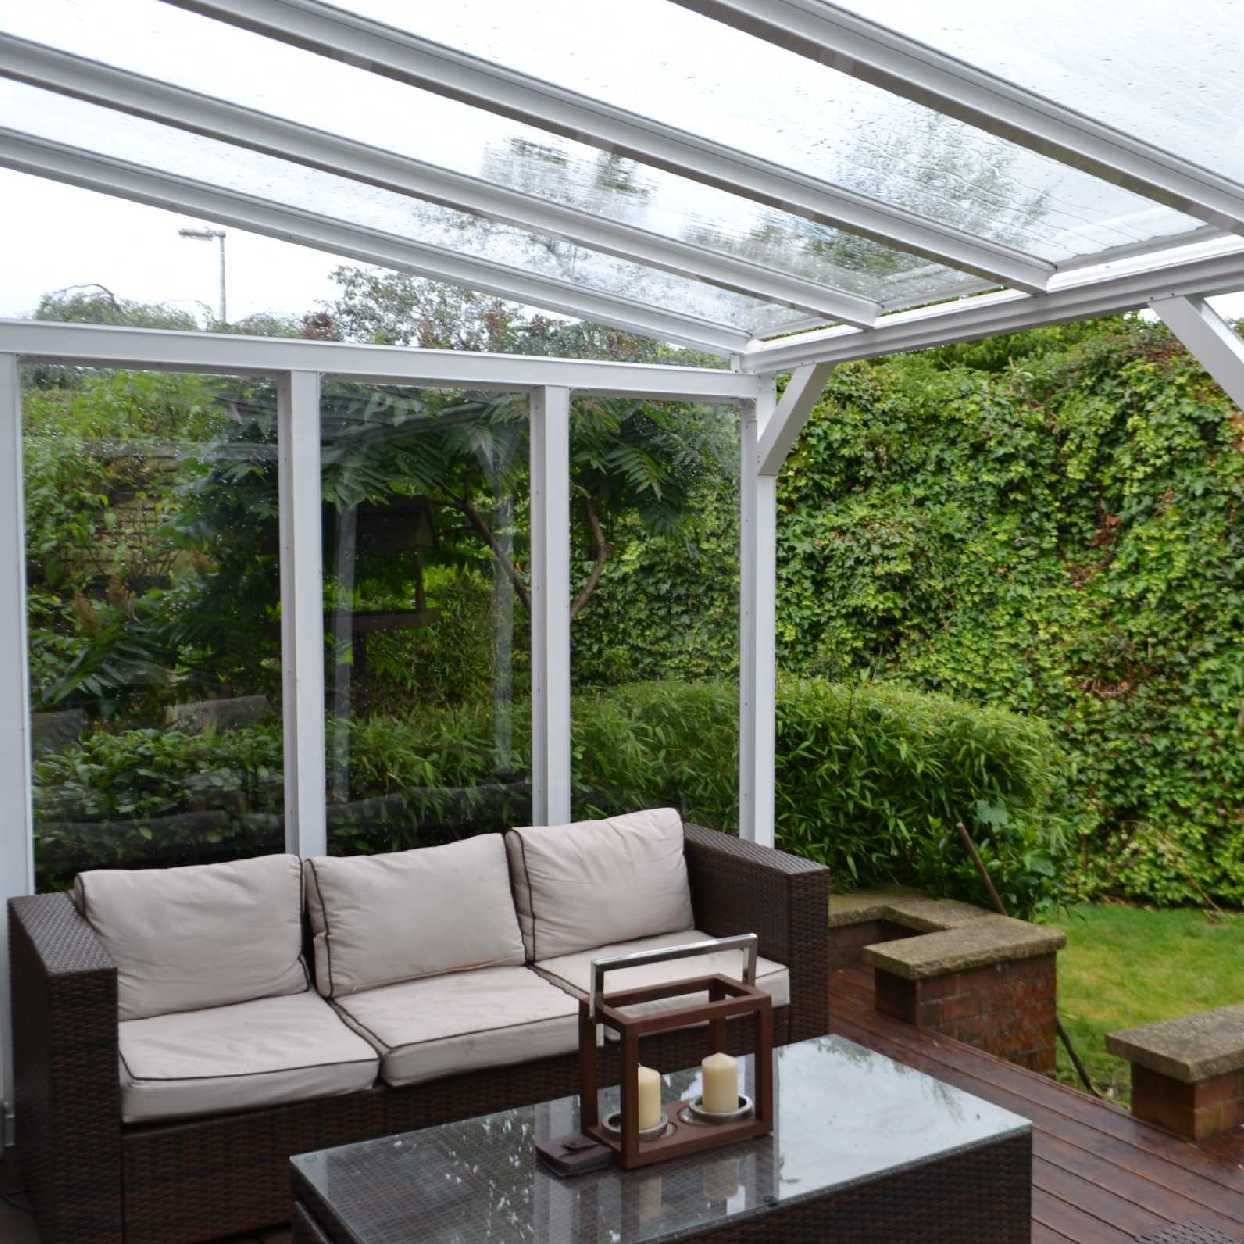 Great selection of Omega Smart White Lean-To Canopy with 16mm Polycarbonate Glazing - 3.1m (W) x 2.0m (P), (2) Supporting Posts